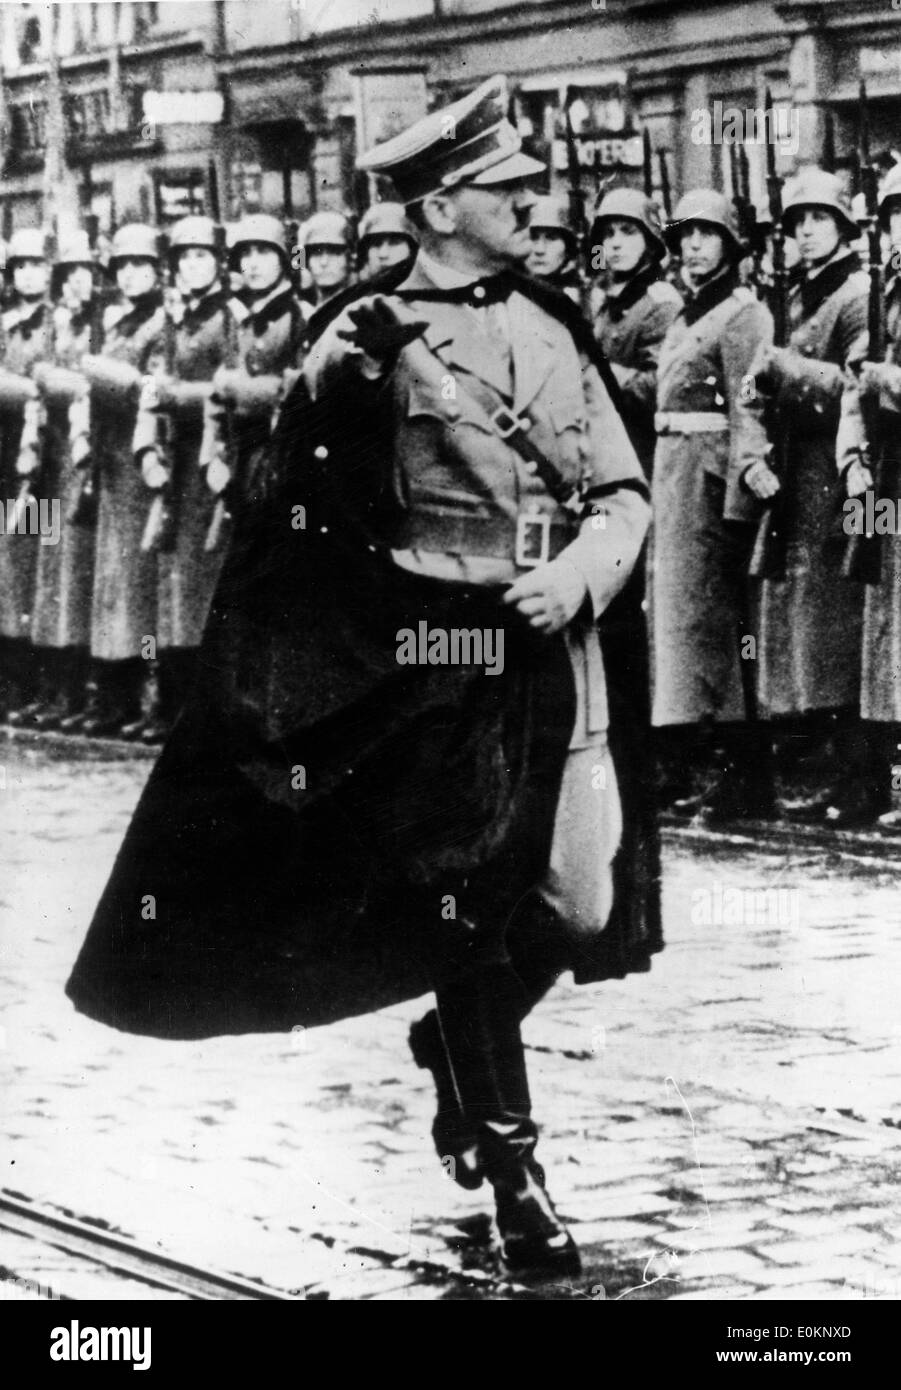 Adolf Hitler inspecting his troops - Stock Image